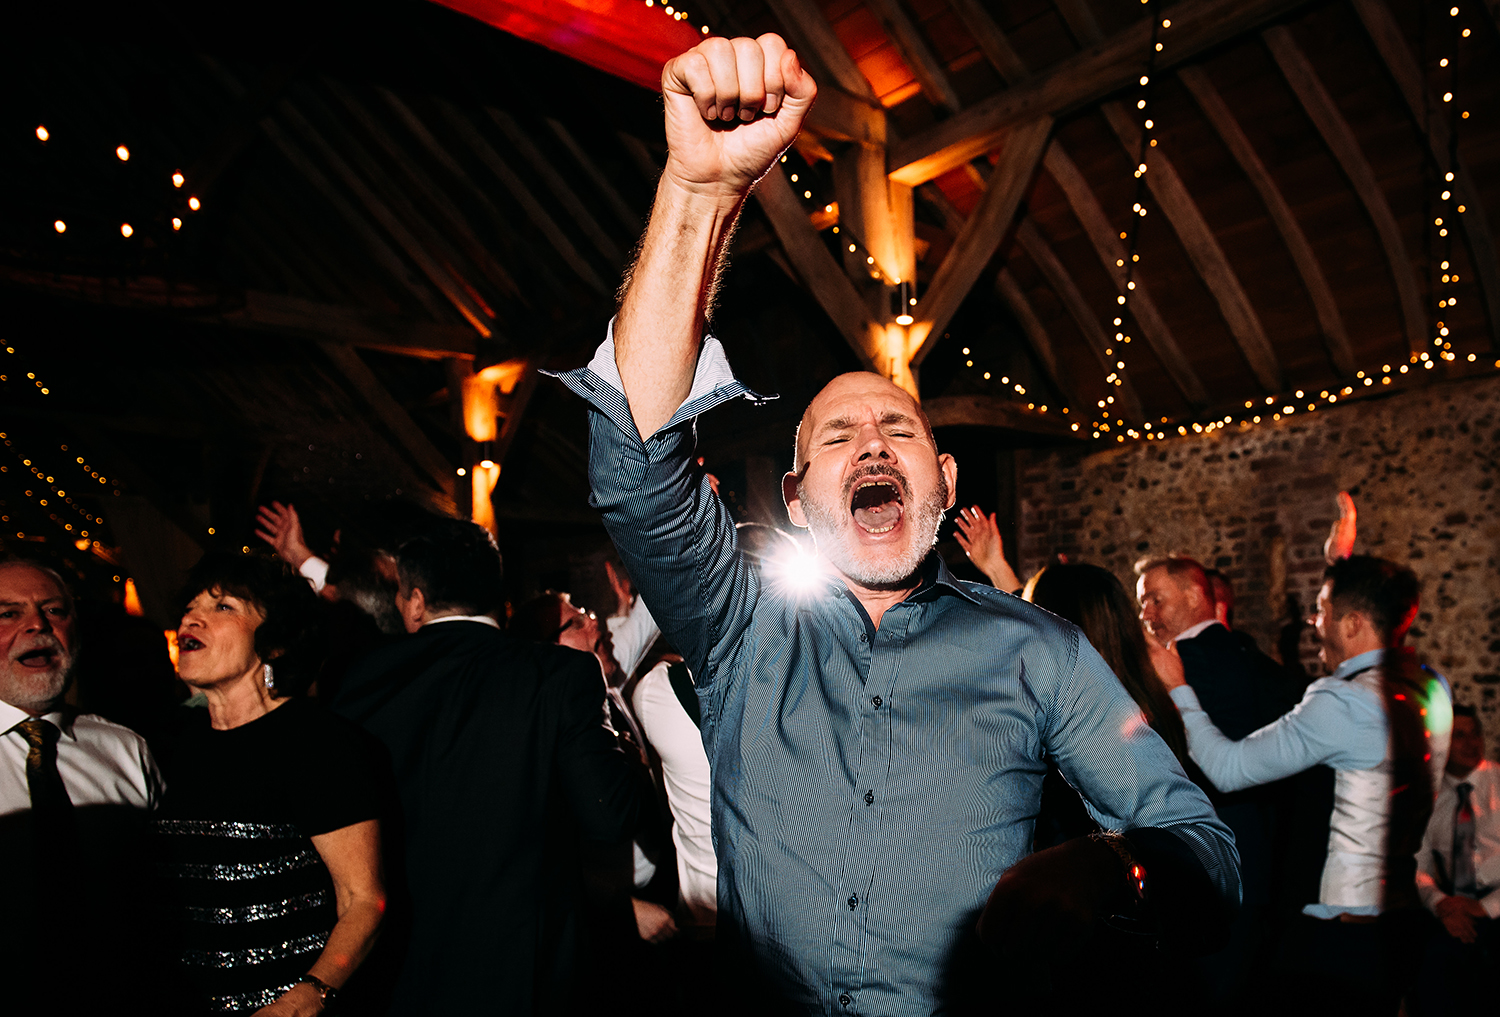 guest 'fist pumping' on the dancefloor